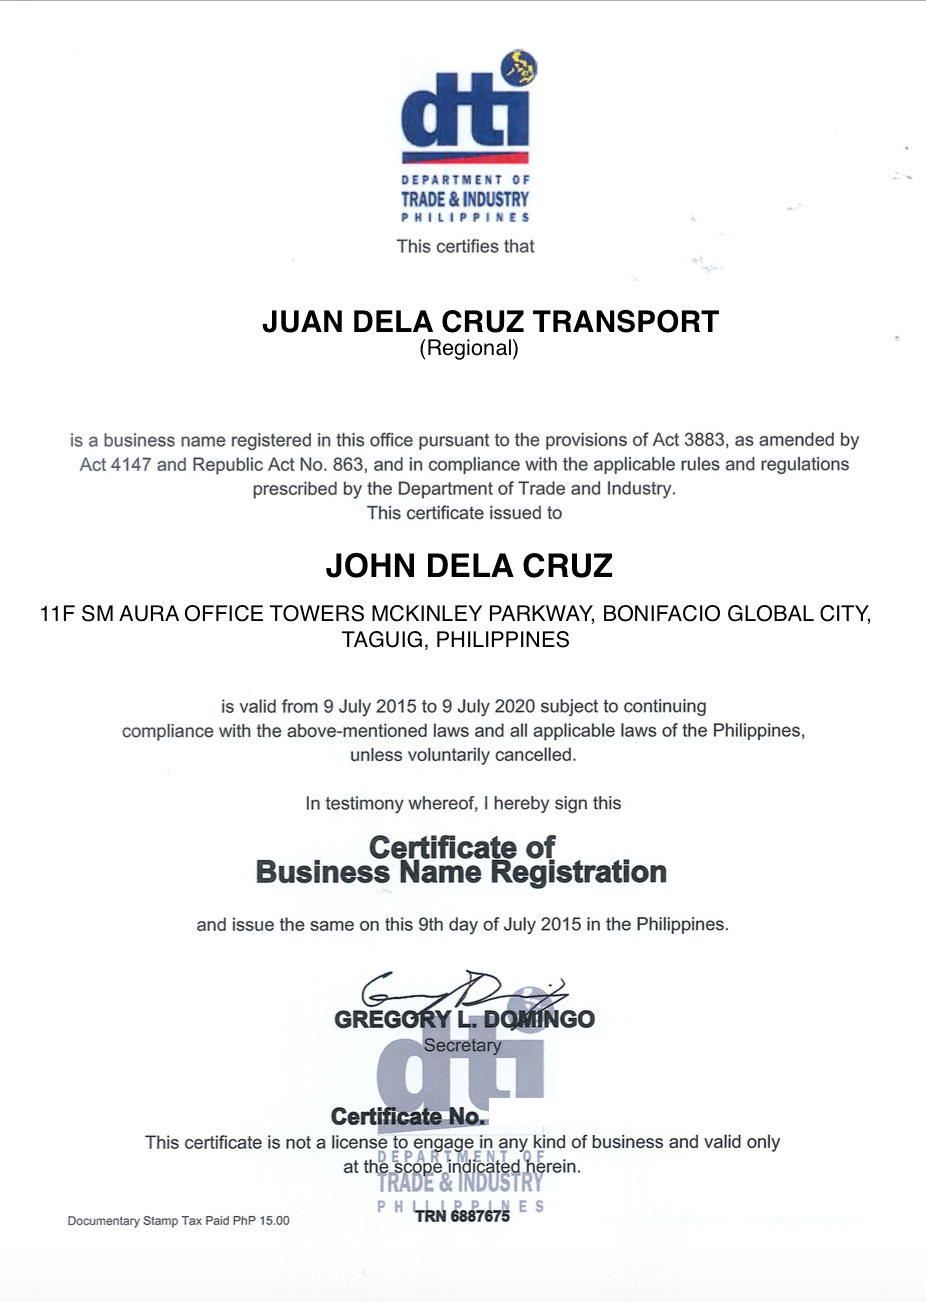 Uber Partner Guide To Dti Online Business Name Registration Uber